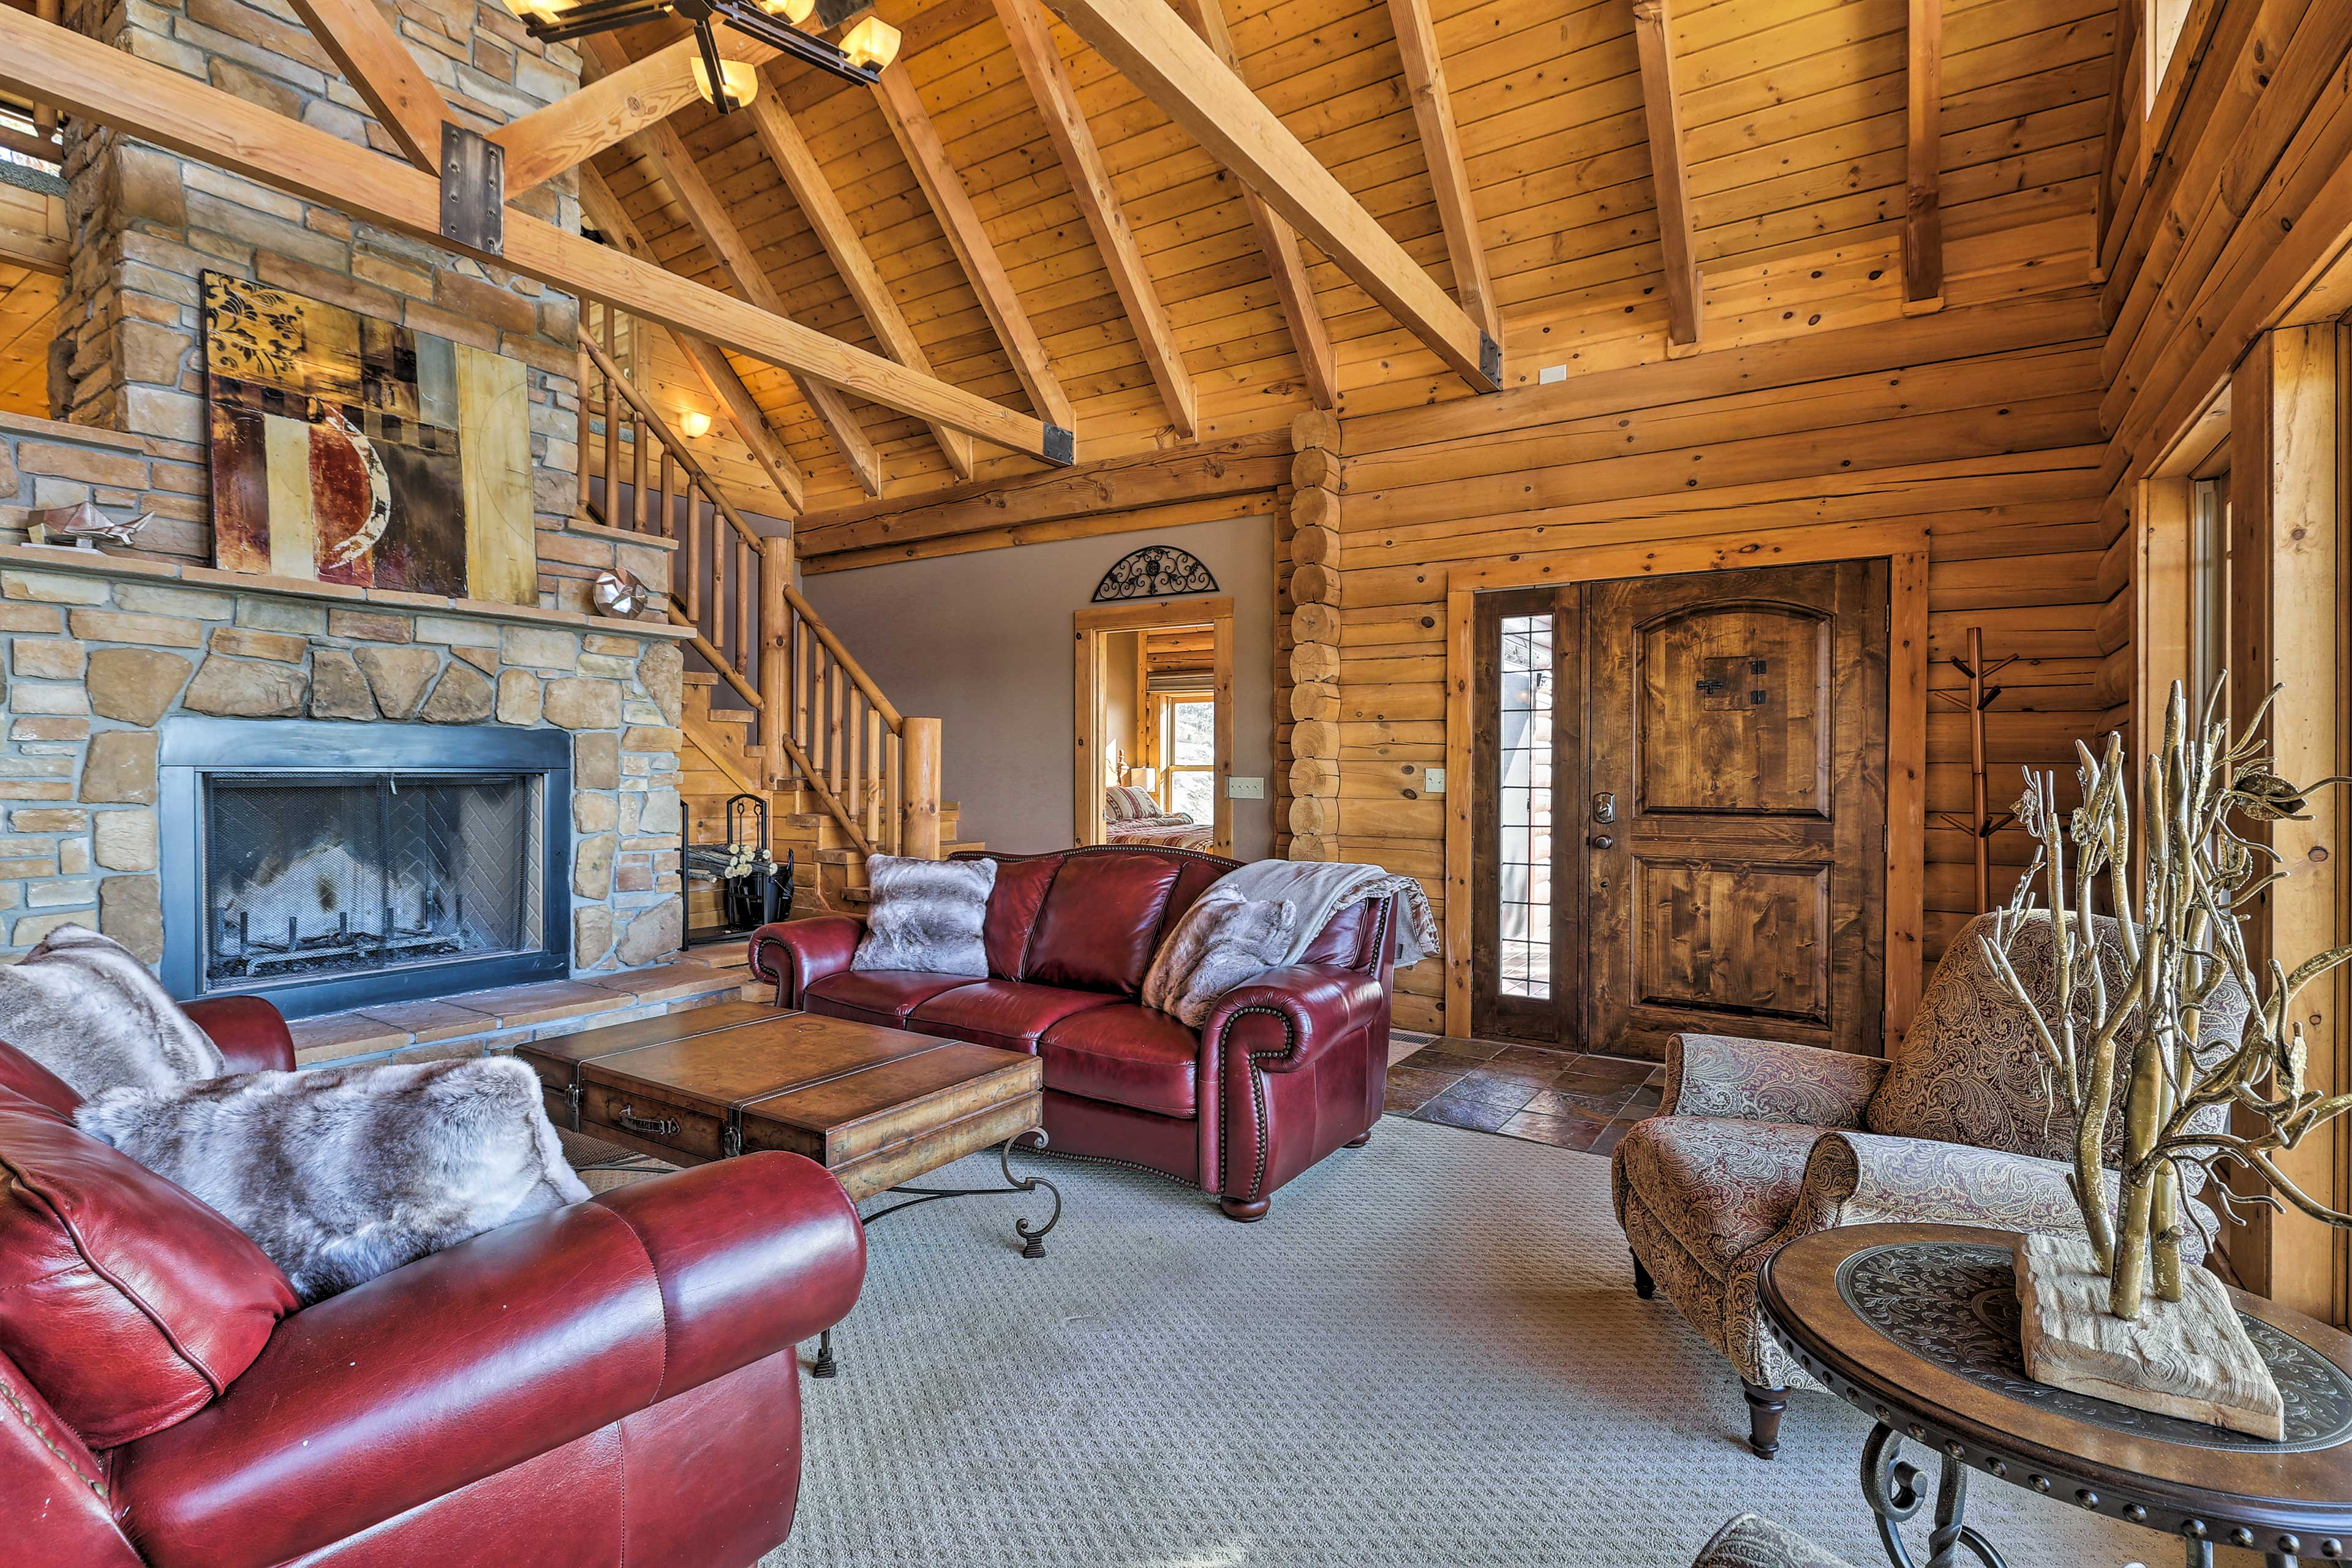 The stone fireplace and leather couches makes the living room cozy.